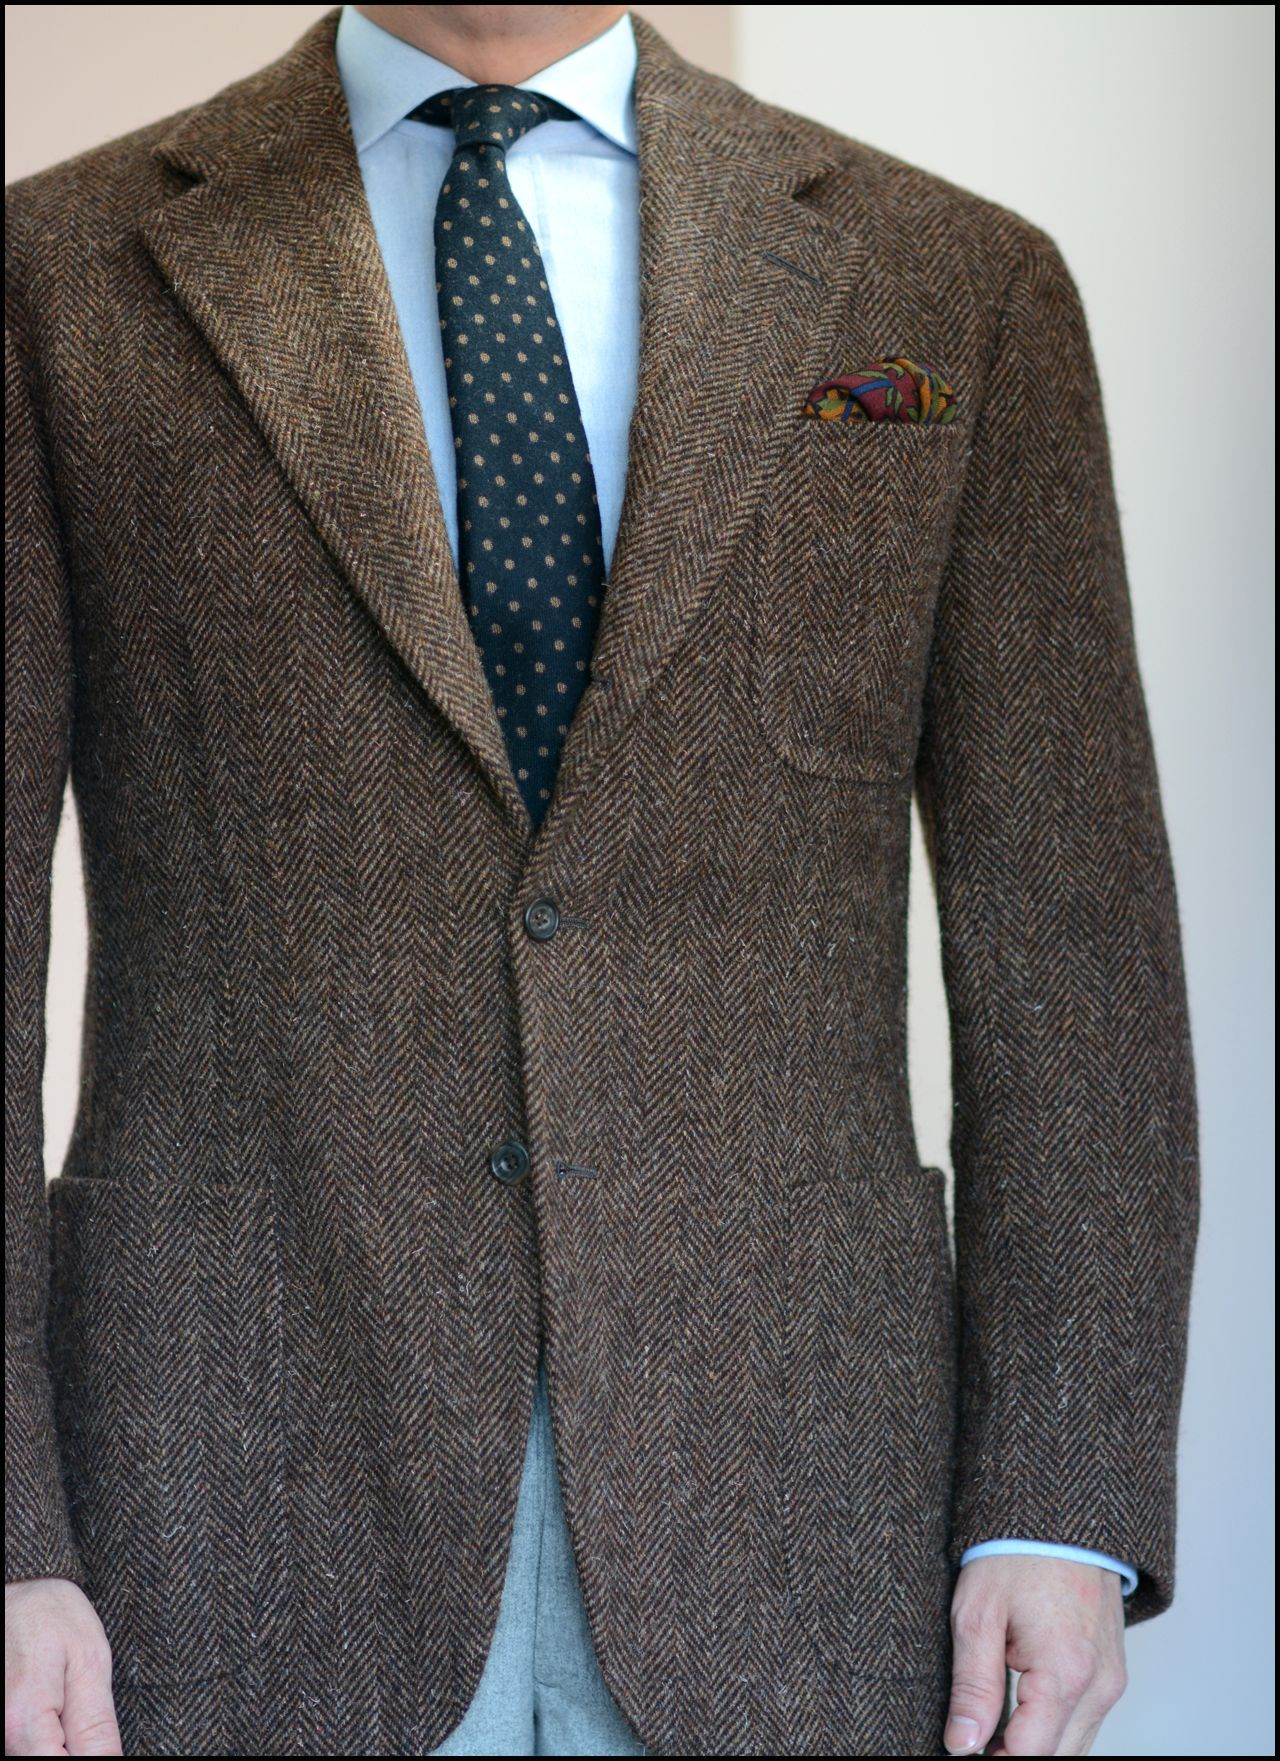 heavy tweed jacket cashmere tie chambray shirt wool